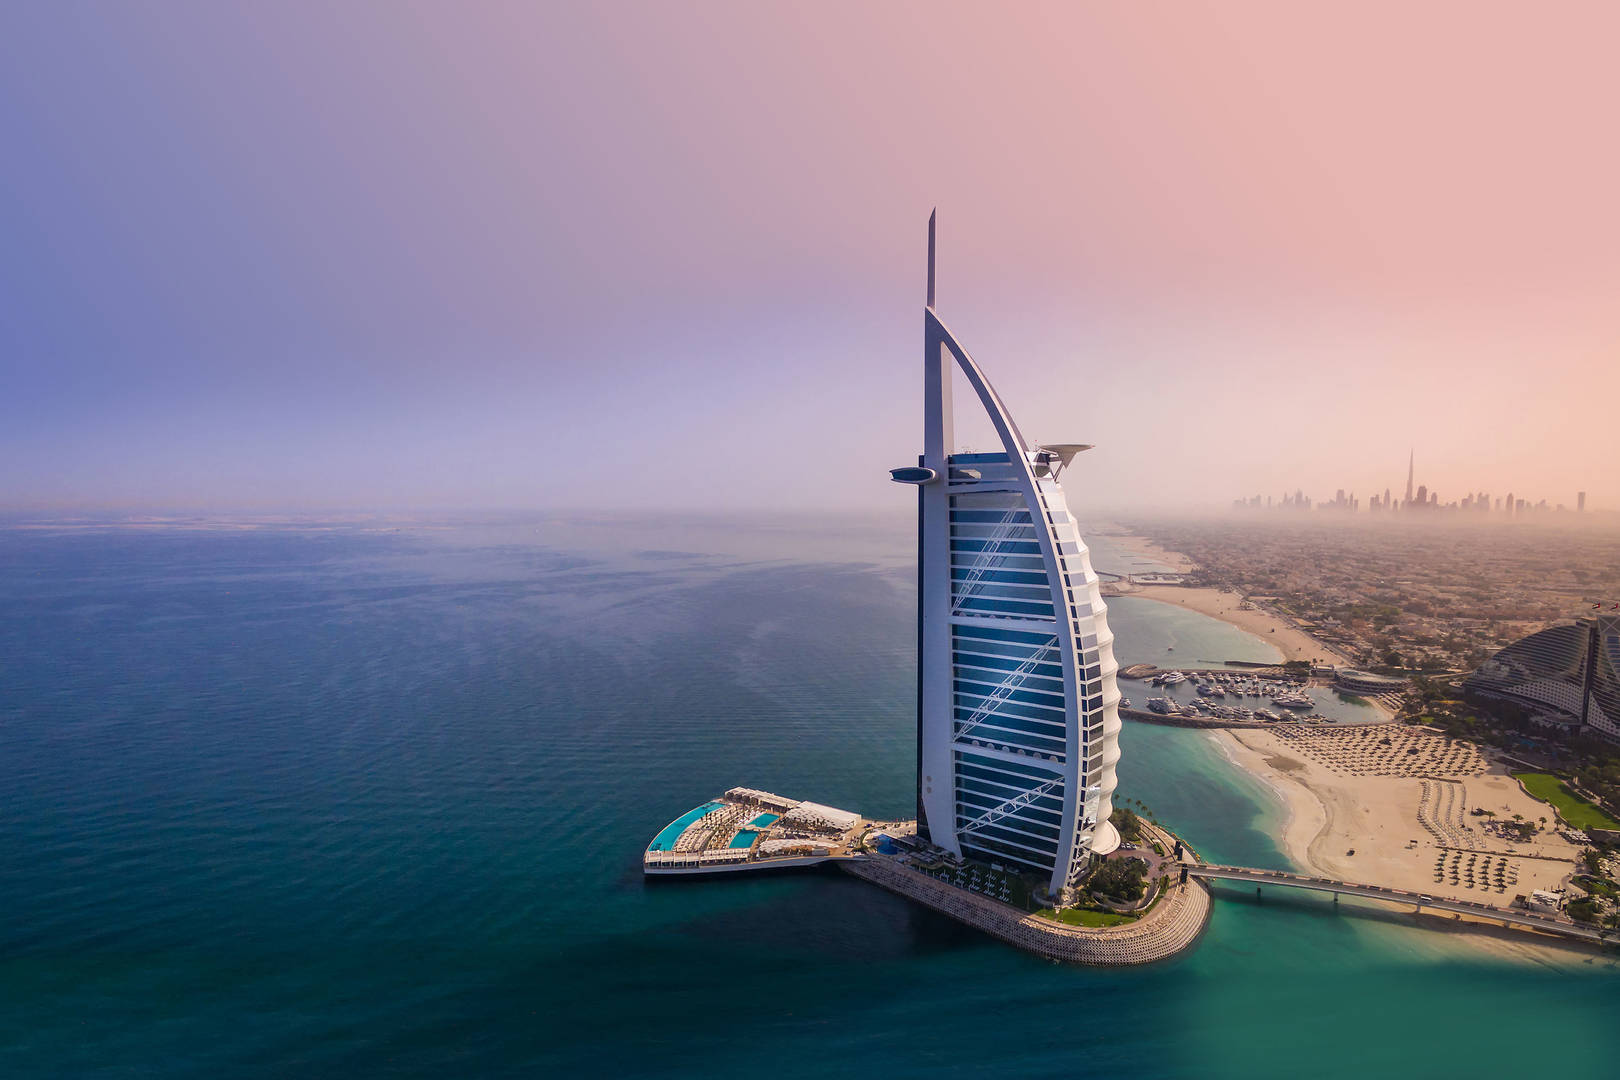 Airal exteria shot of Jumeirah Arab Burj Al Arab, including sea and beach